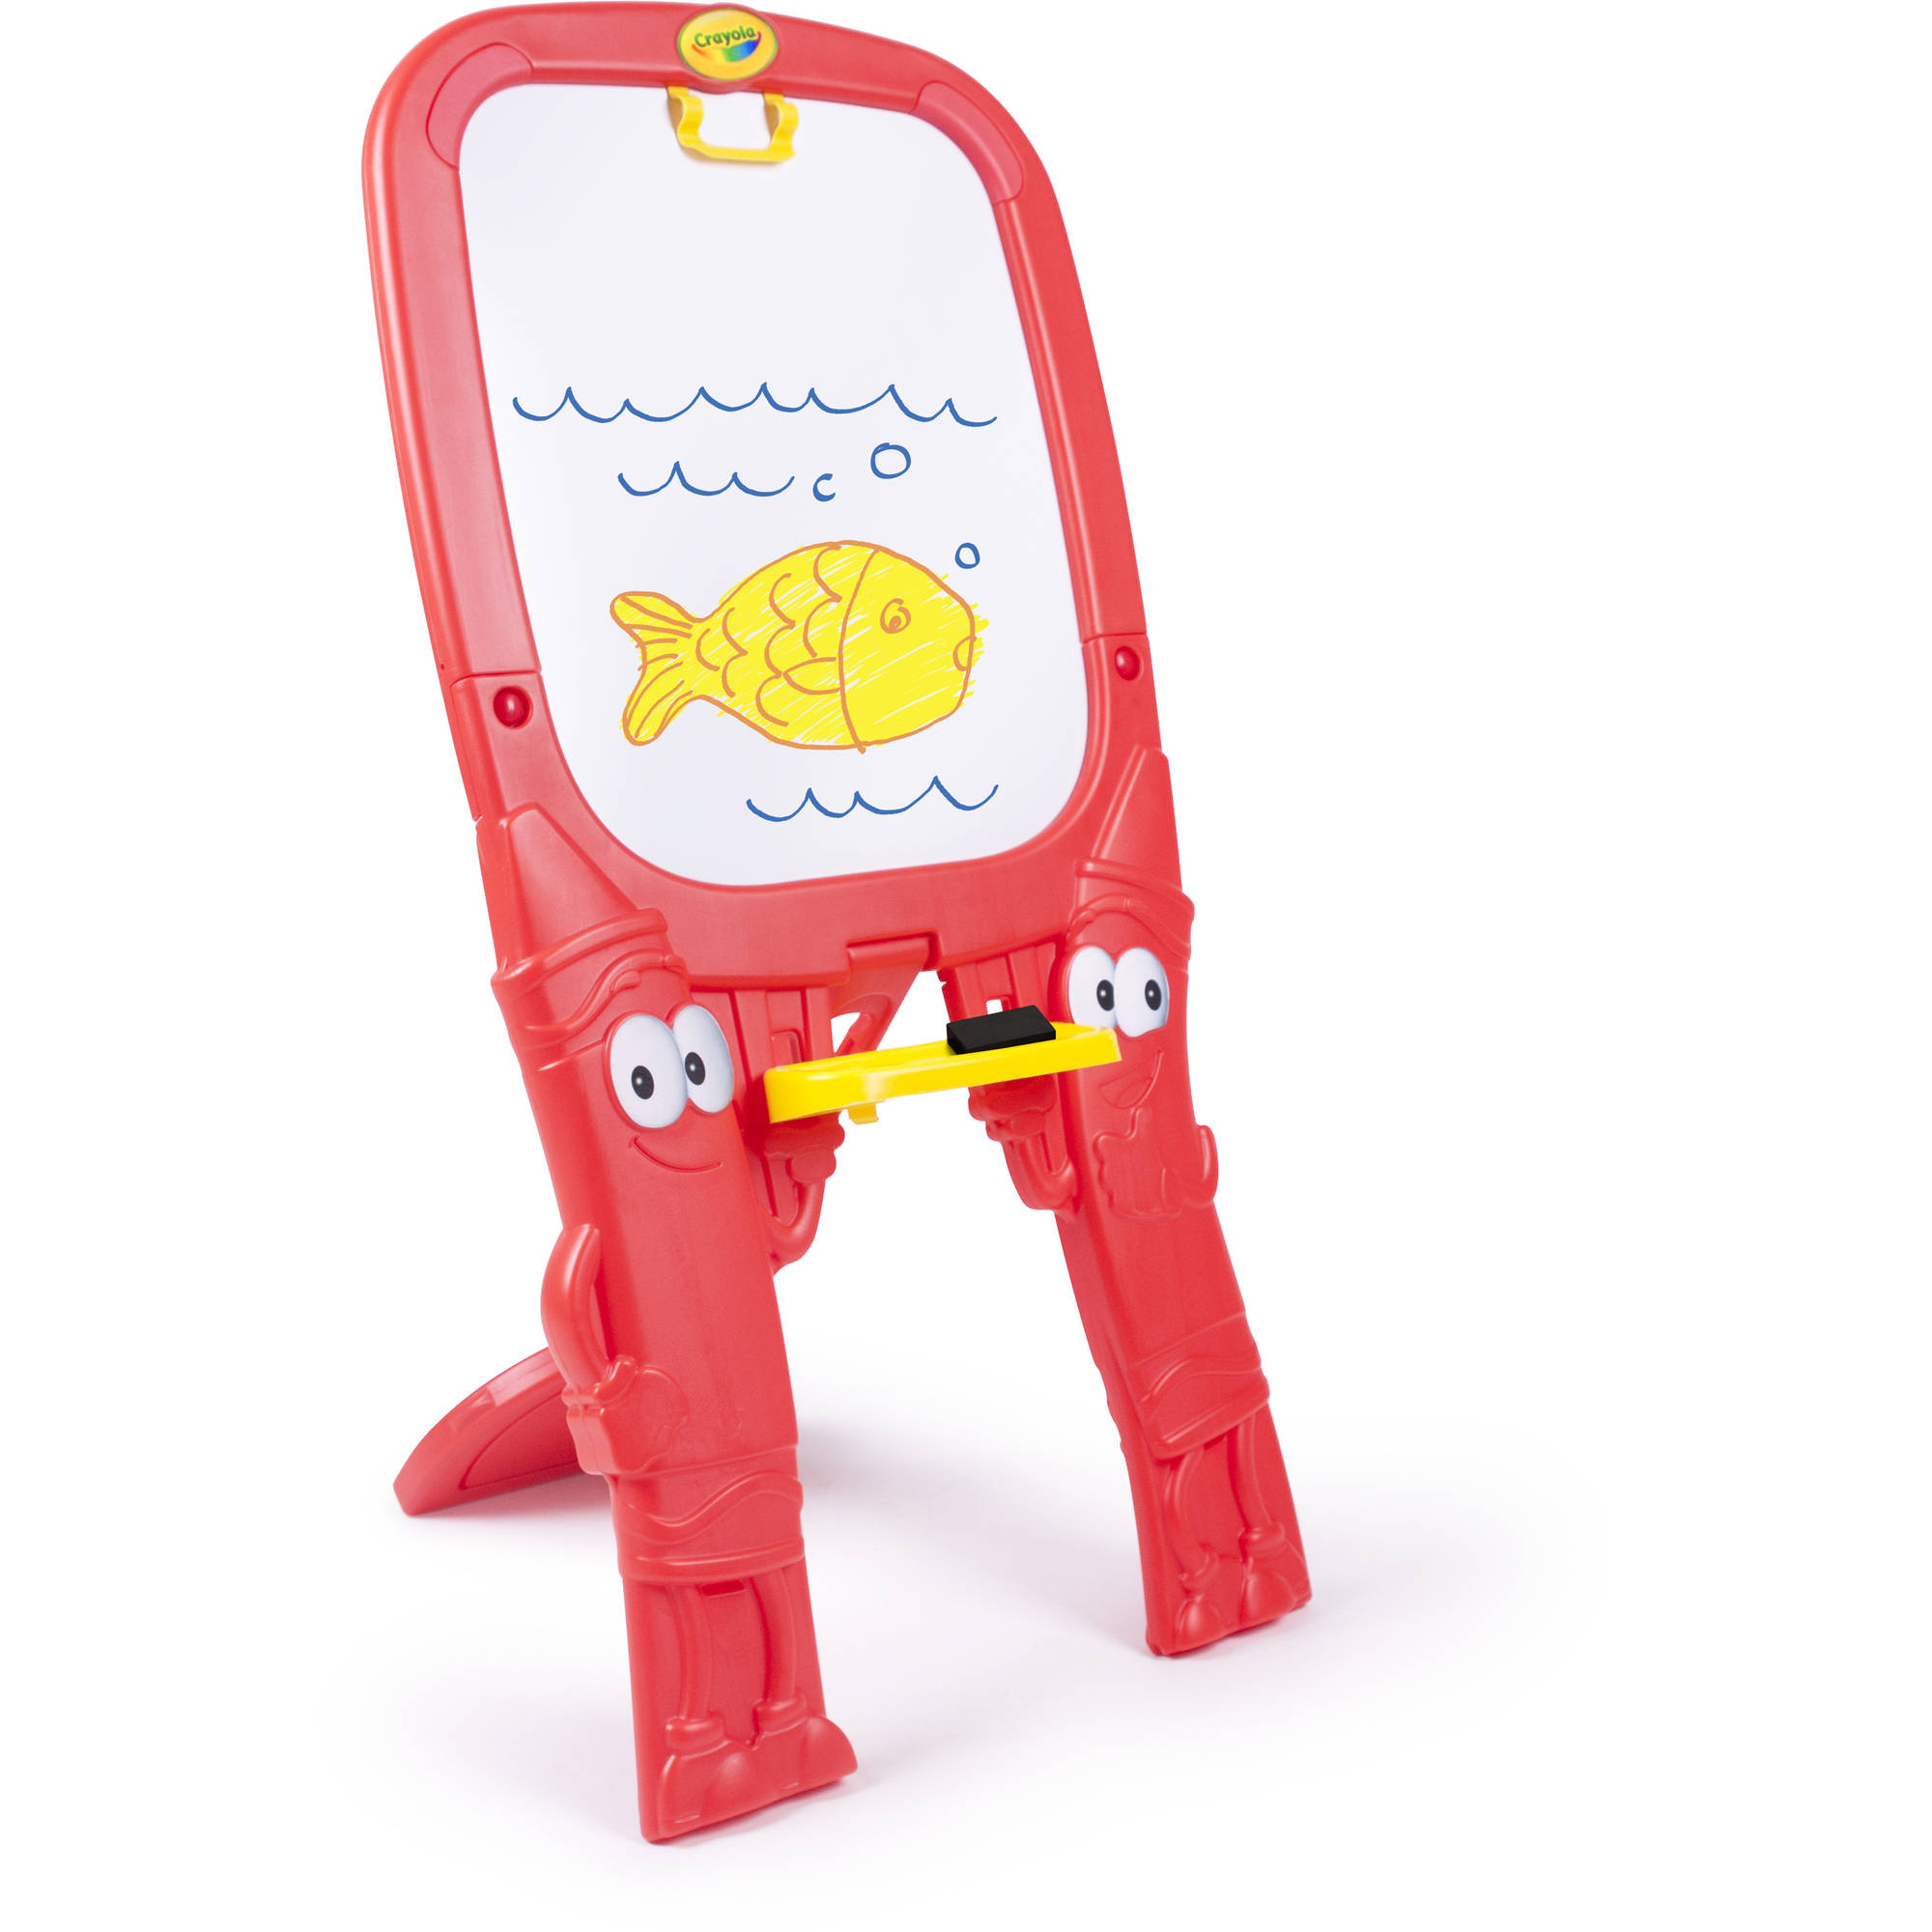 Crayola Qwikflip Double-Sided Easel